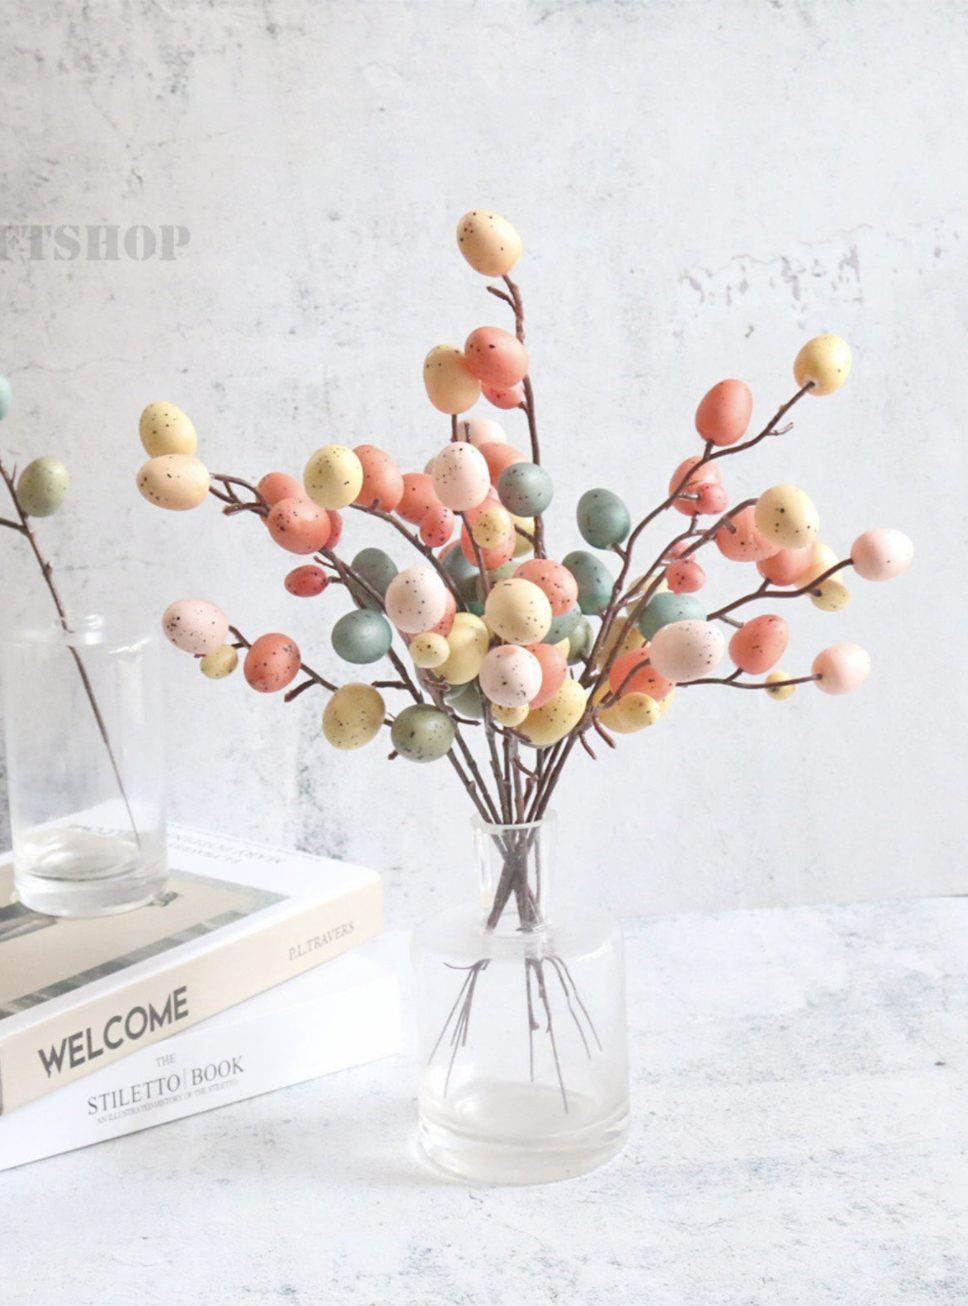 Easter tree egg decorations with stems